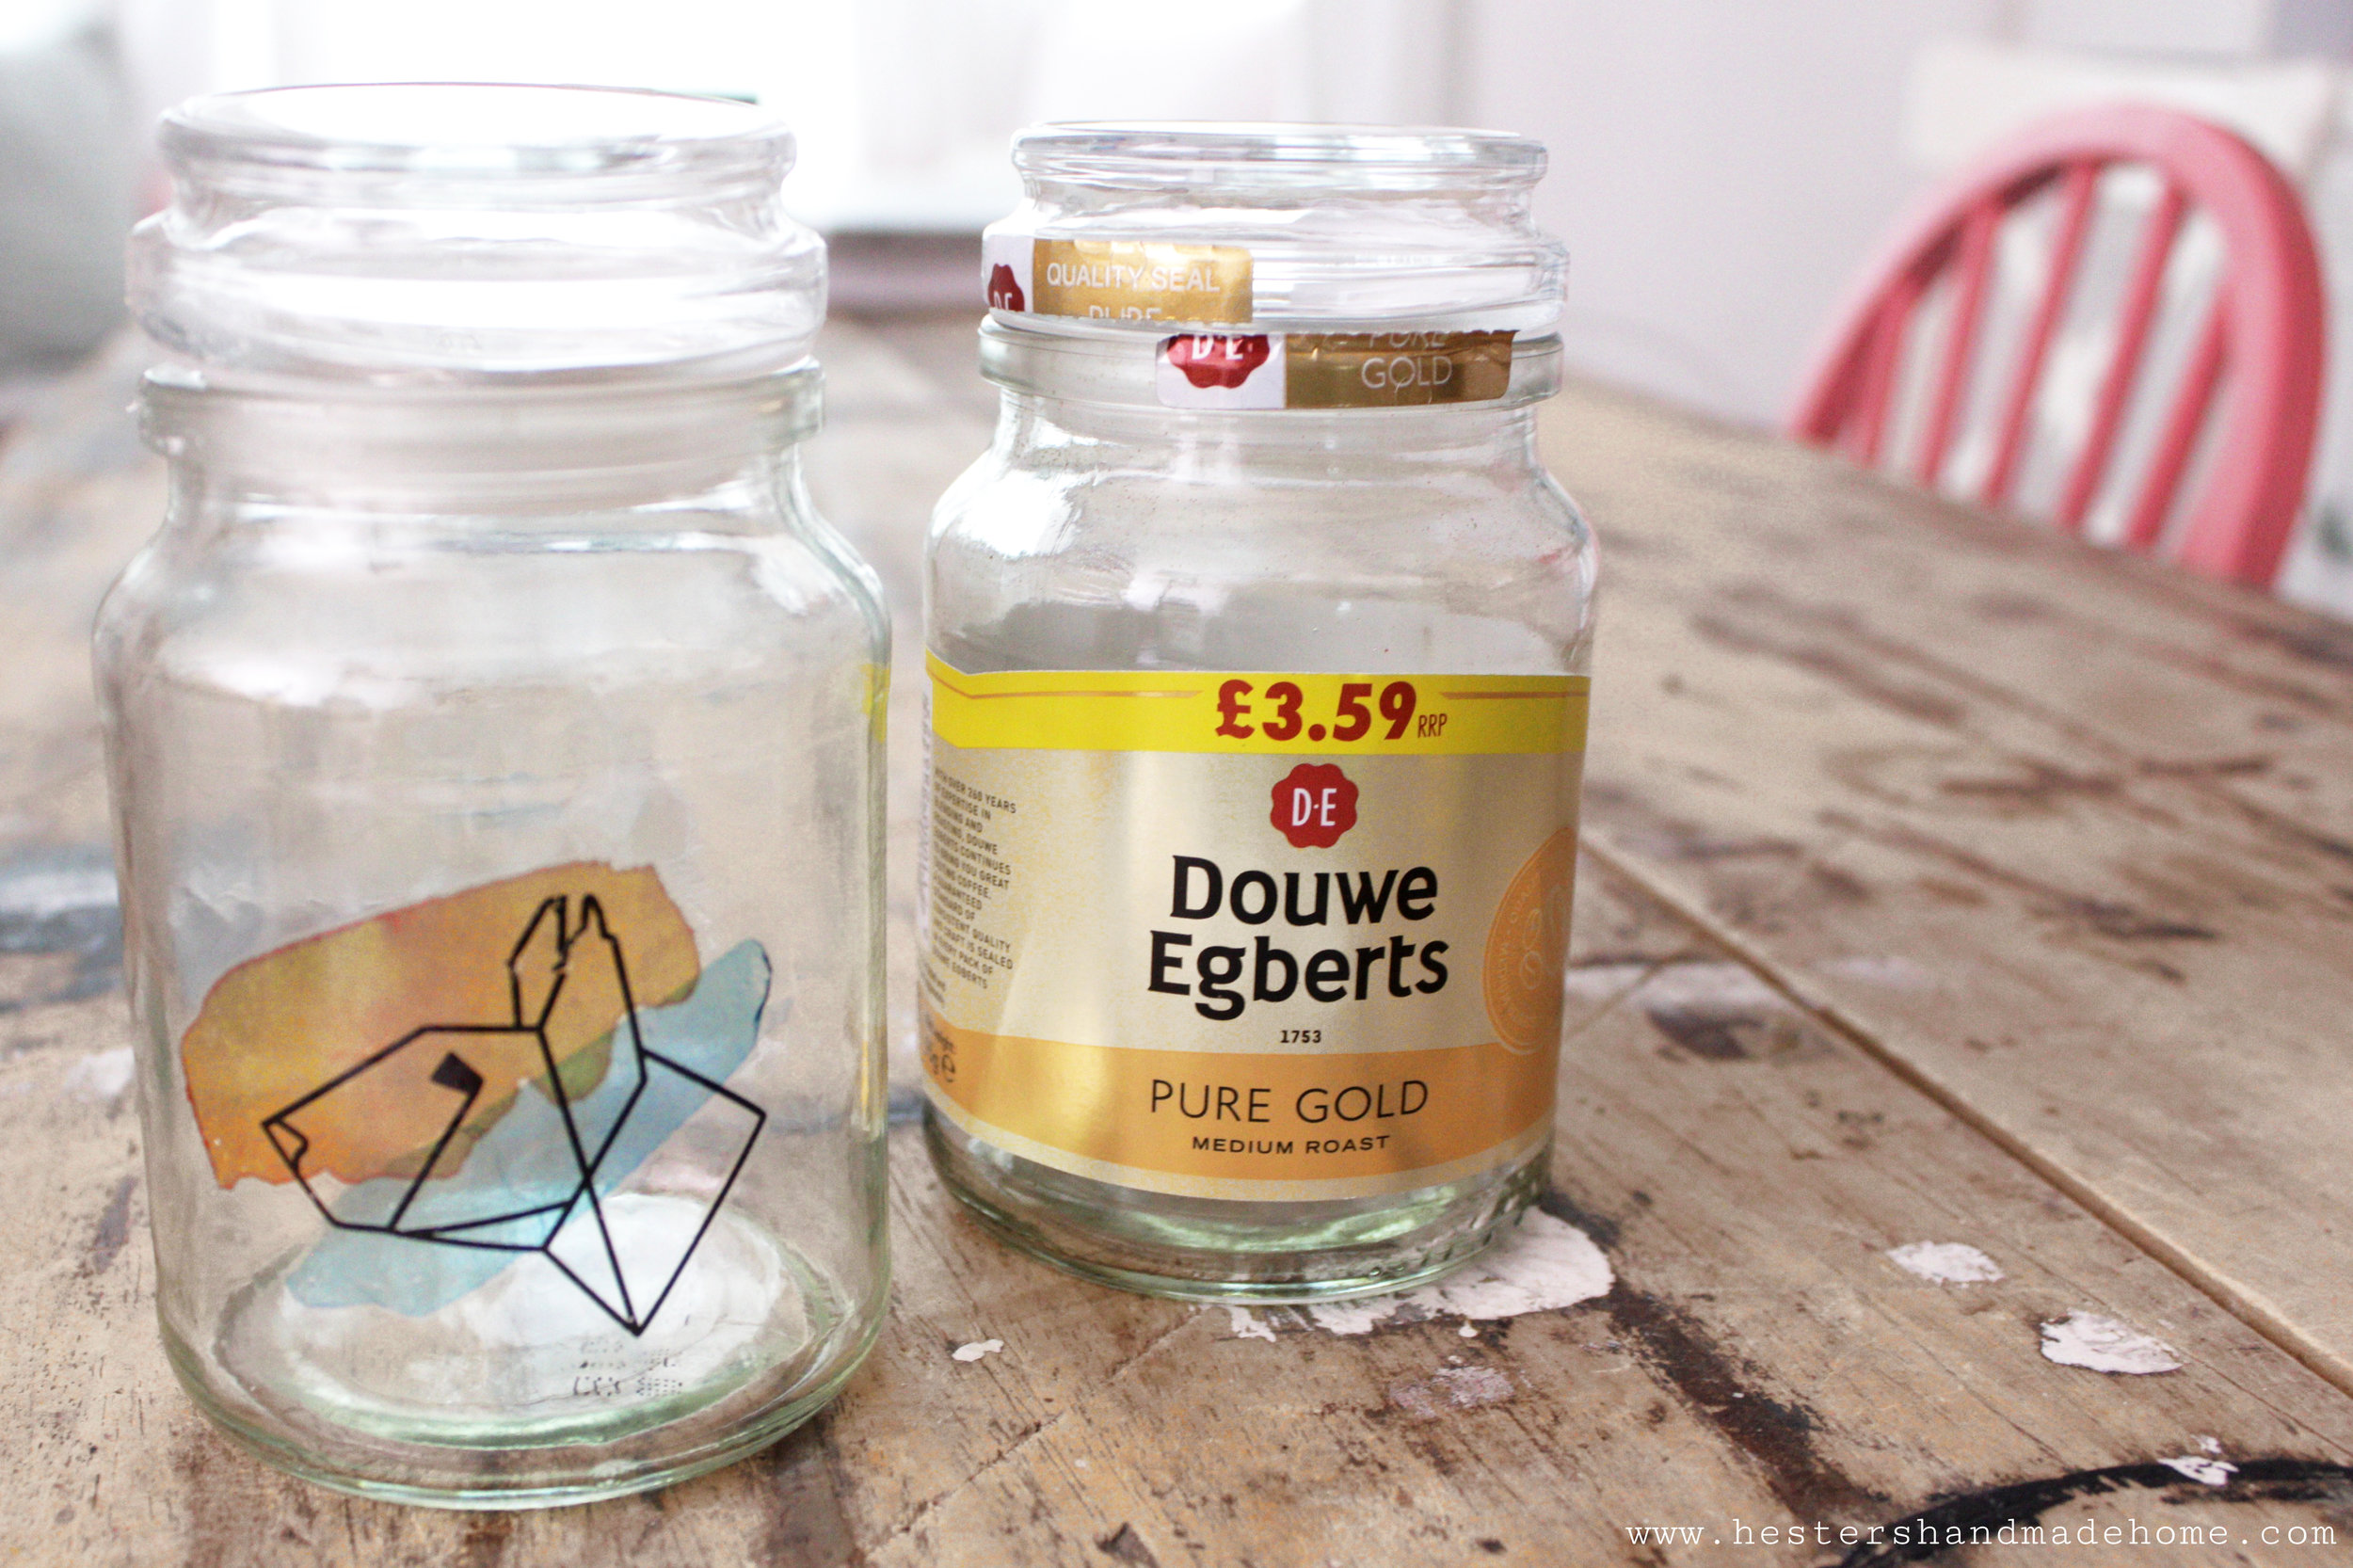 Decorate an empt Douwe Egberts jar with temporary tattoo's, tutorial by www.hestershandmadehome.com